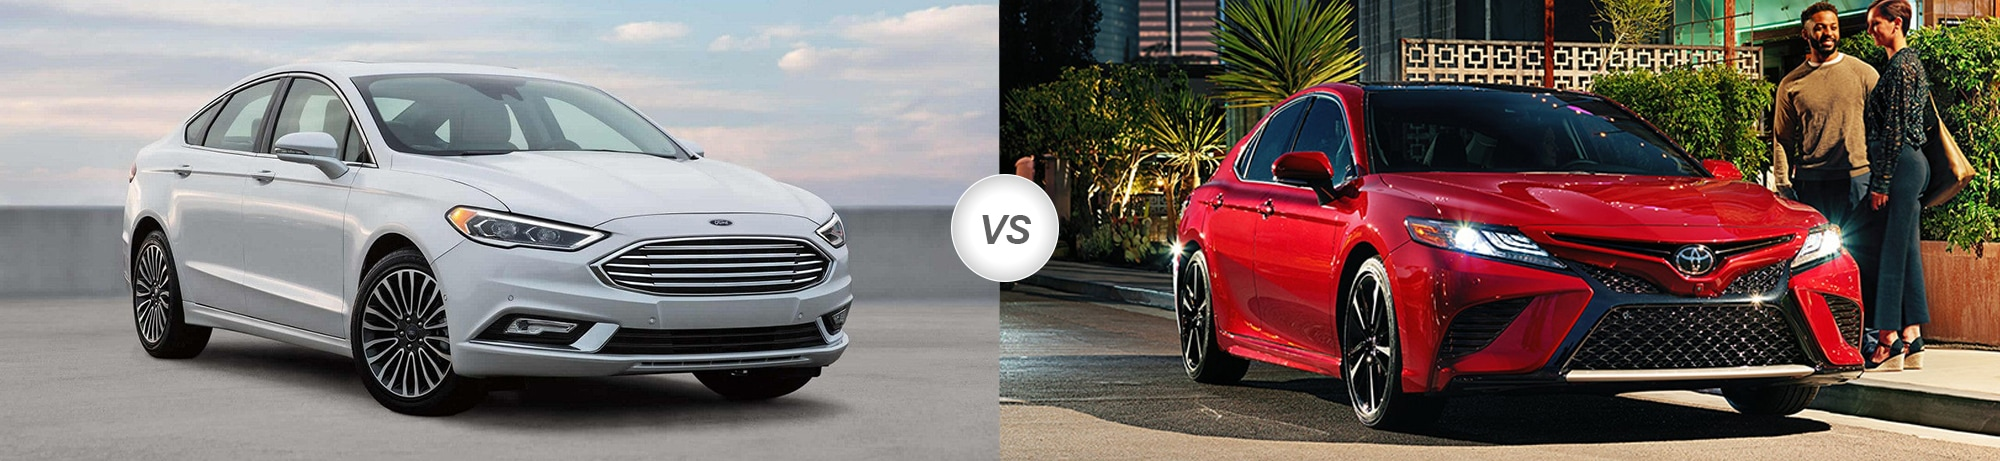 2018 Ford Fusion vs 2018 Toyota Camry